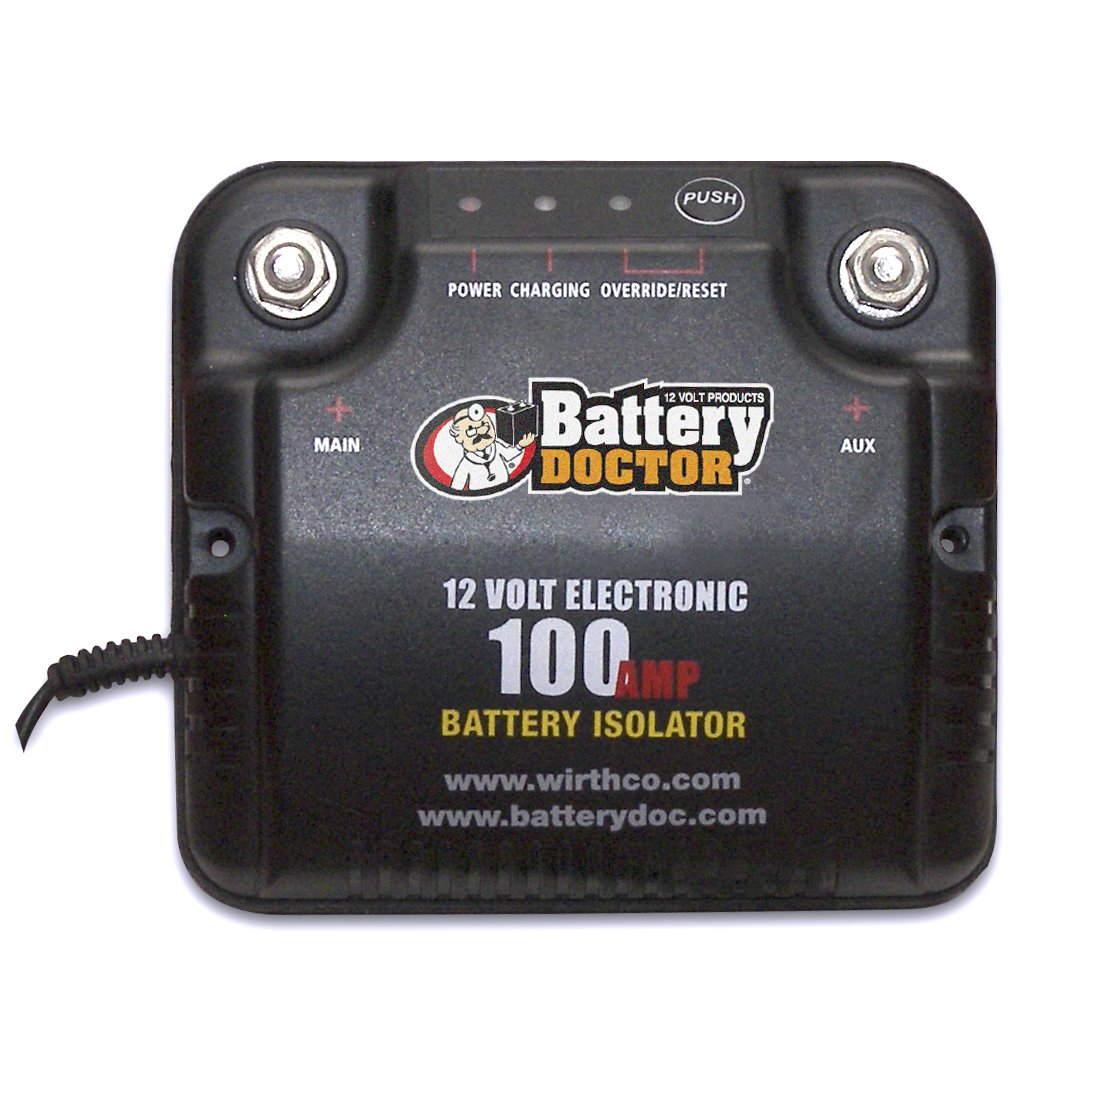 71C7jkFh94L._SL1104_ amazon com wirthco 20090 battery doctor 75 amp 100 amp battery  at aneh.co